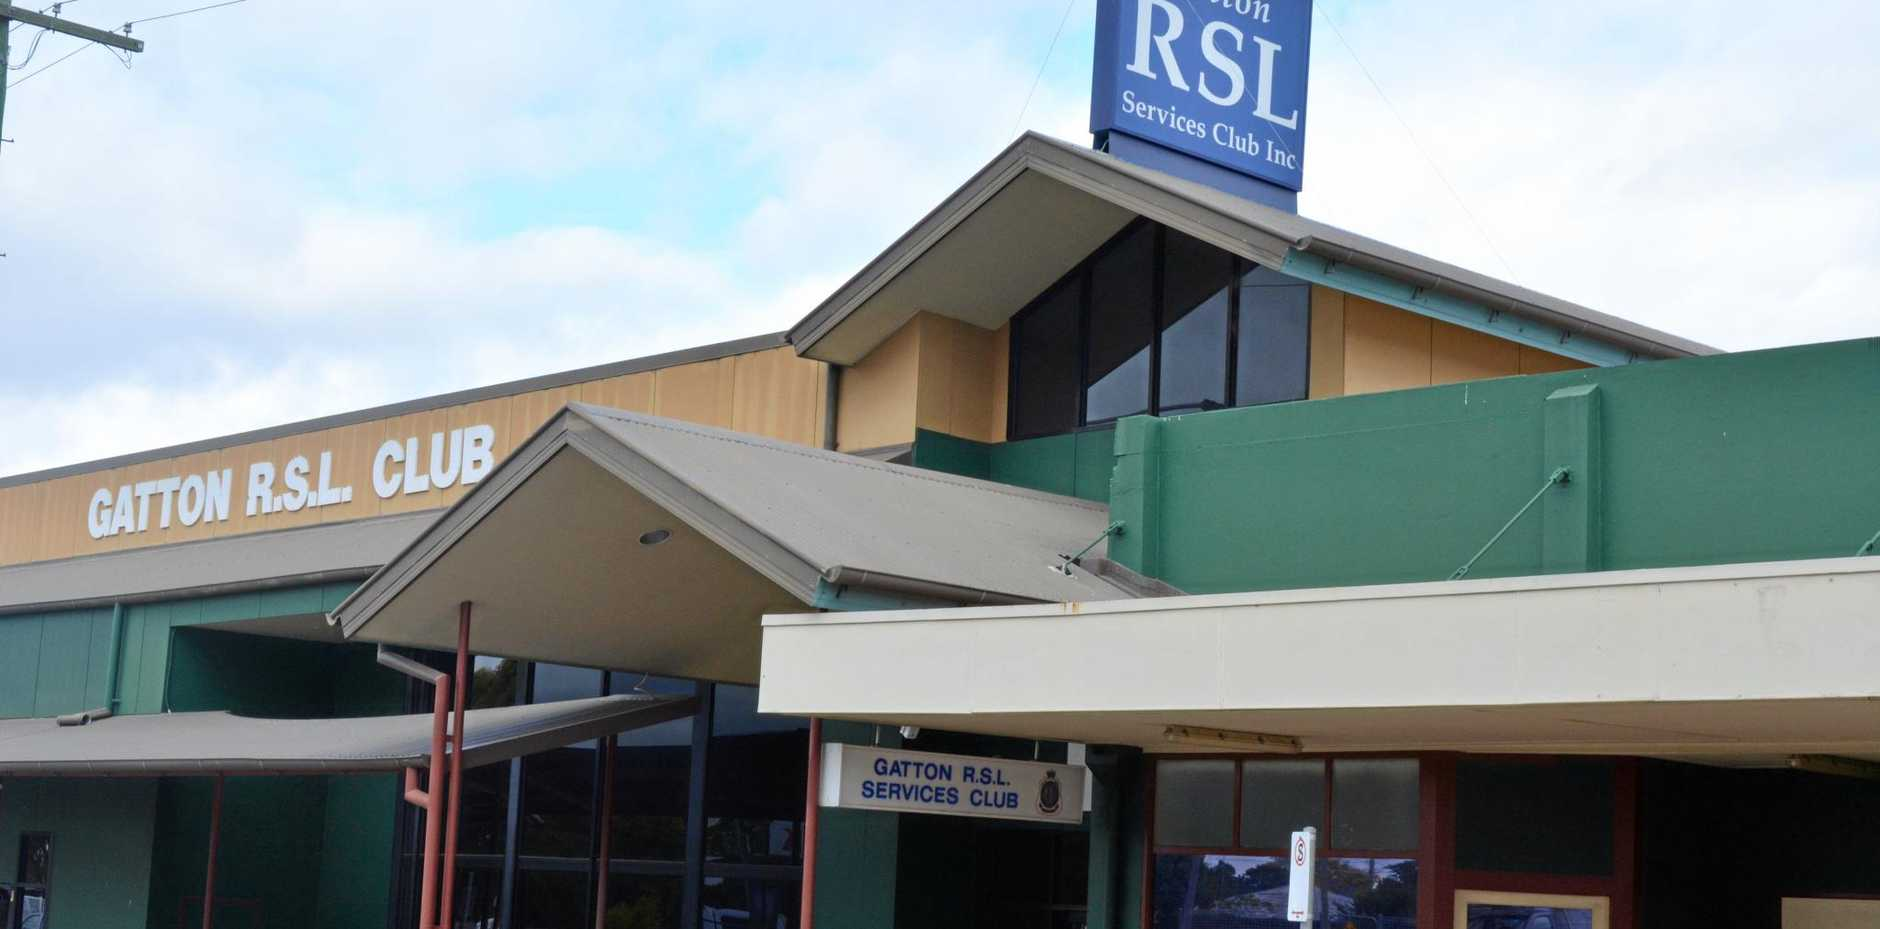 CLOSING: The Gatton RSL will shut its doors to day to day trading to the public on Saturday, June 24.